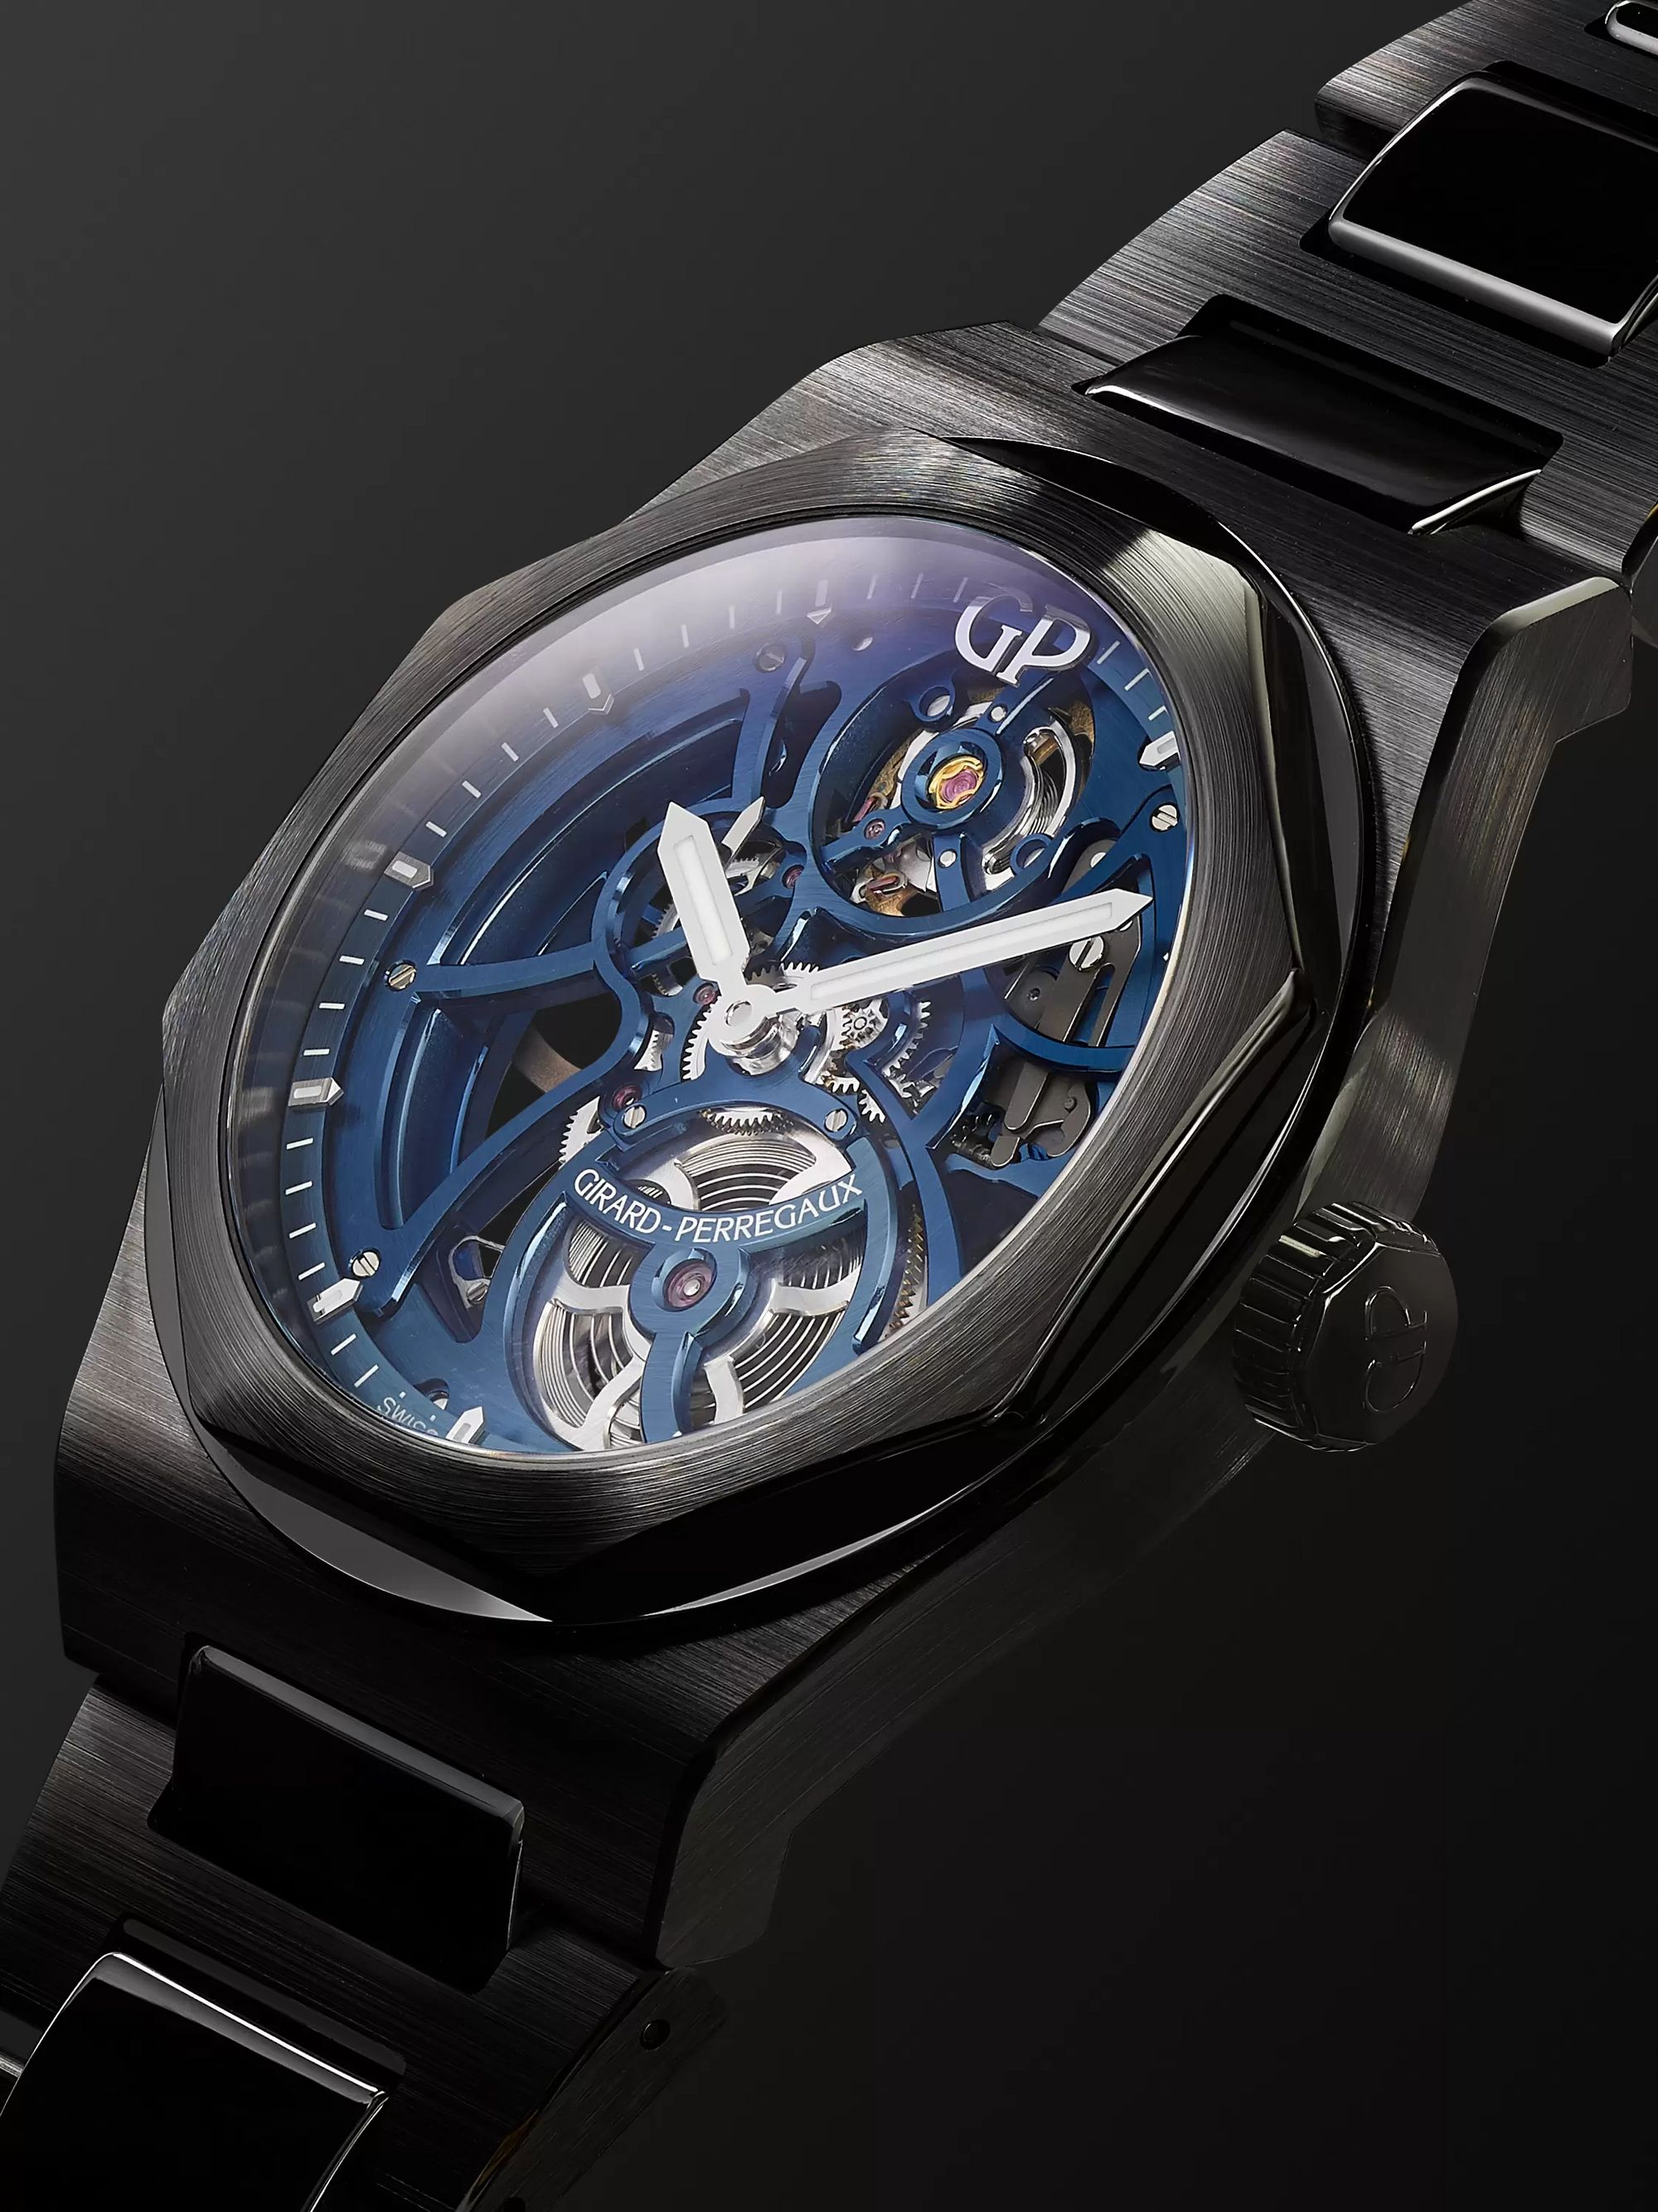 GIRARD-PERREGAUX Laureato Skeleton Automatic 42mm Ceramic Watch, Ref. No. 81015-21-001-32A